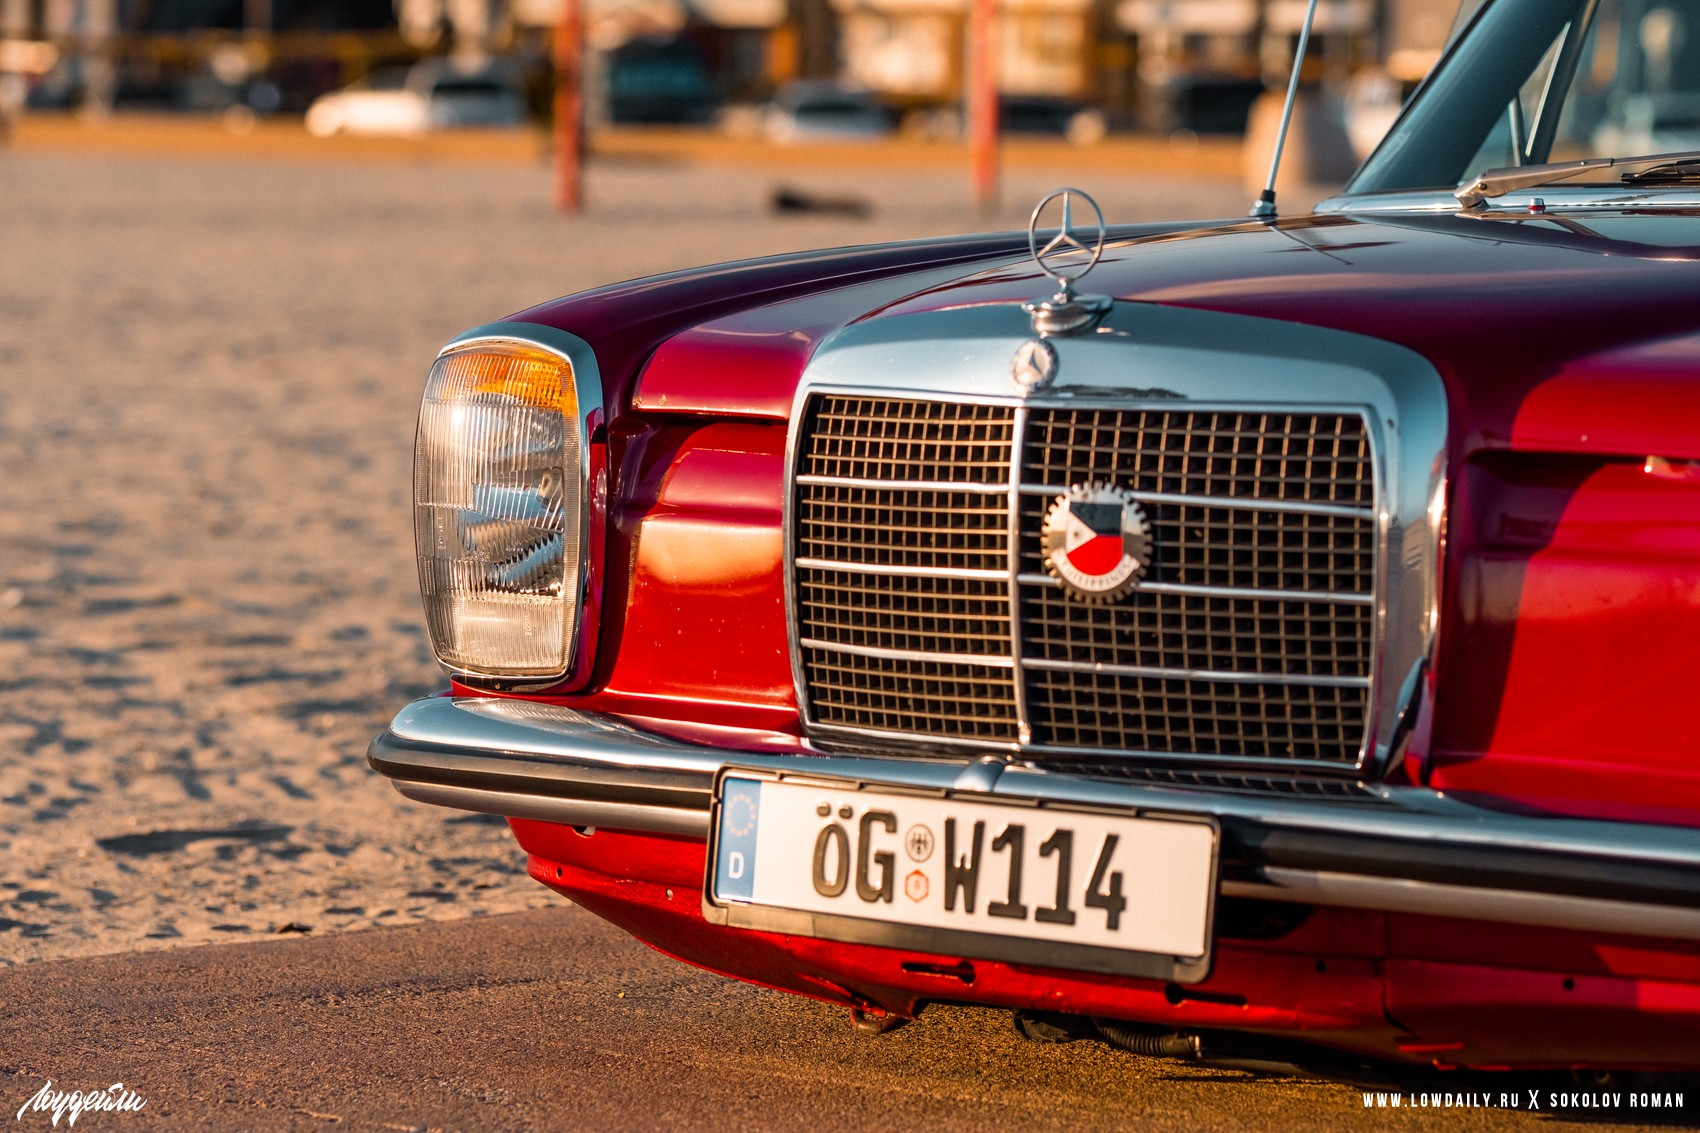 1972 Mercedes-Benz 250 - Chassis- W114